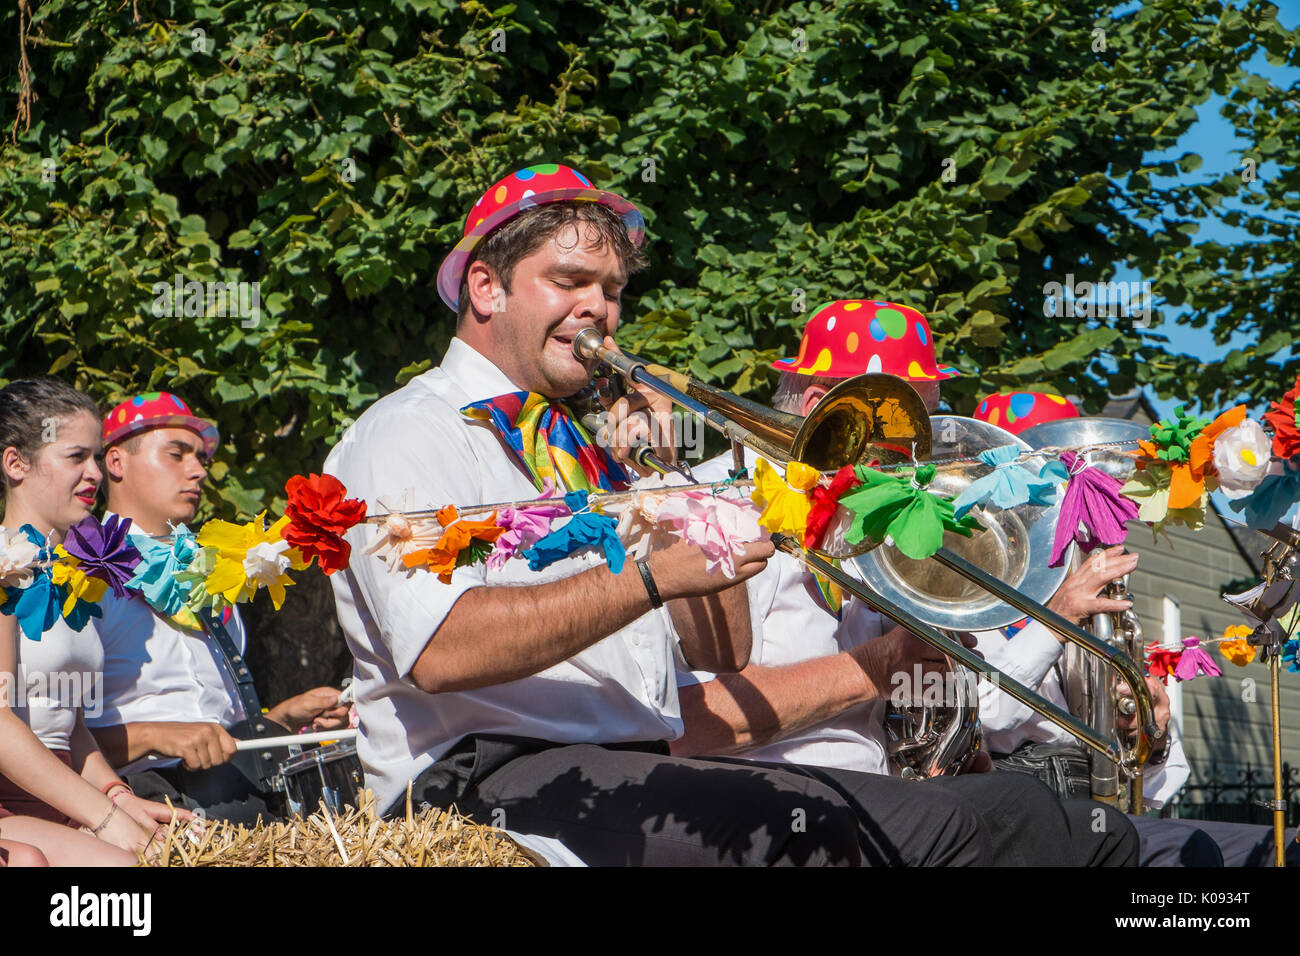 Street festival procession, France. - Stock Image